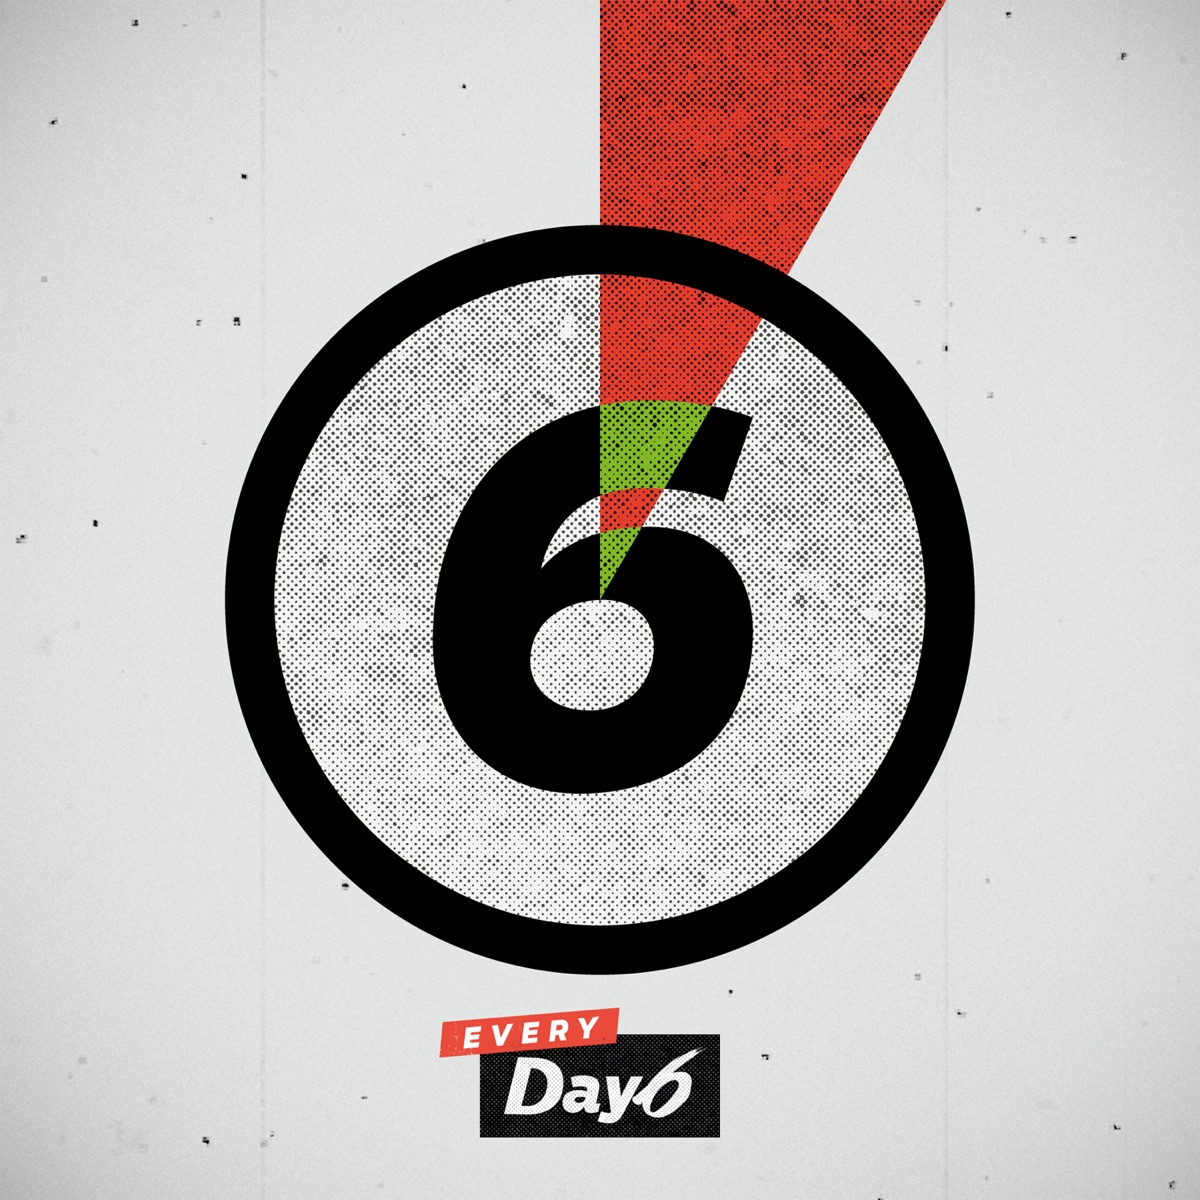 Every DAY6 January - Single Album Cover by DAY6